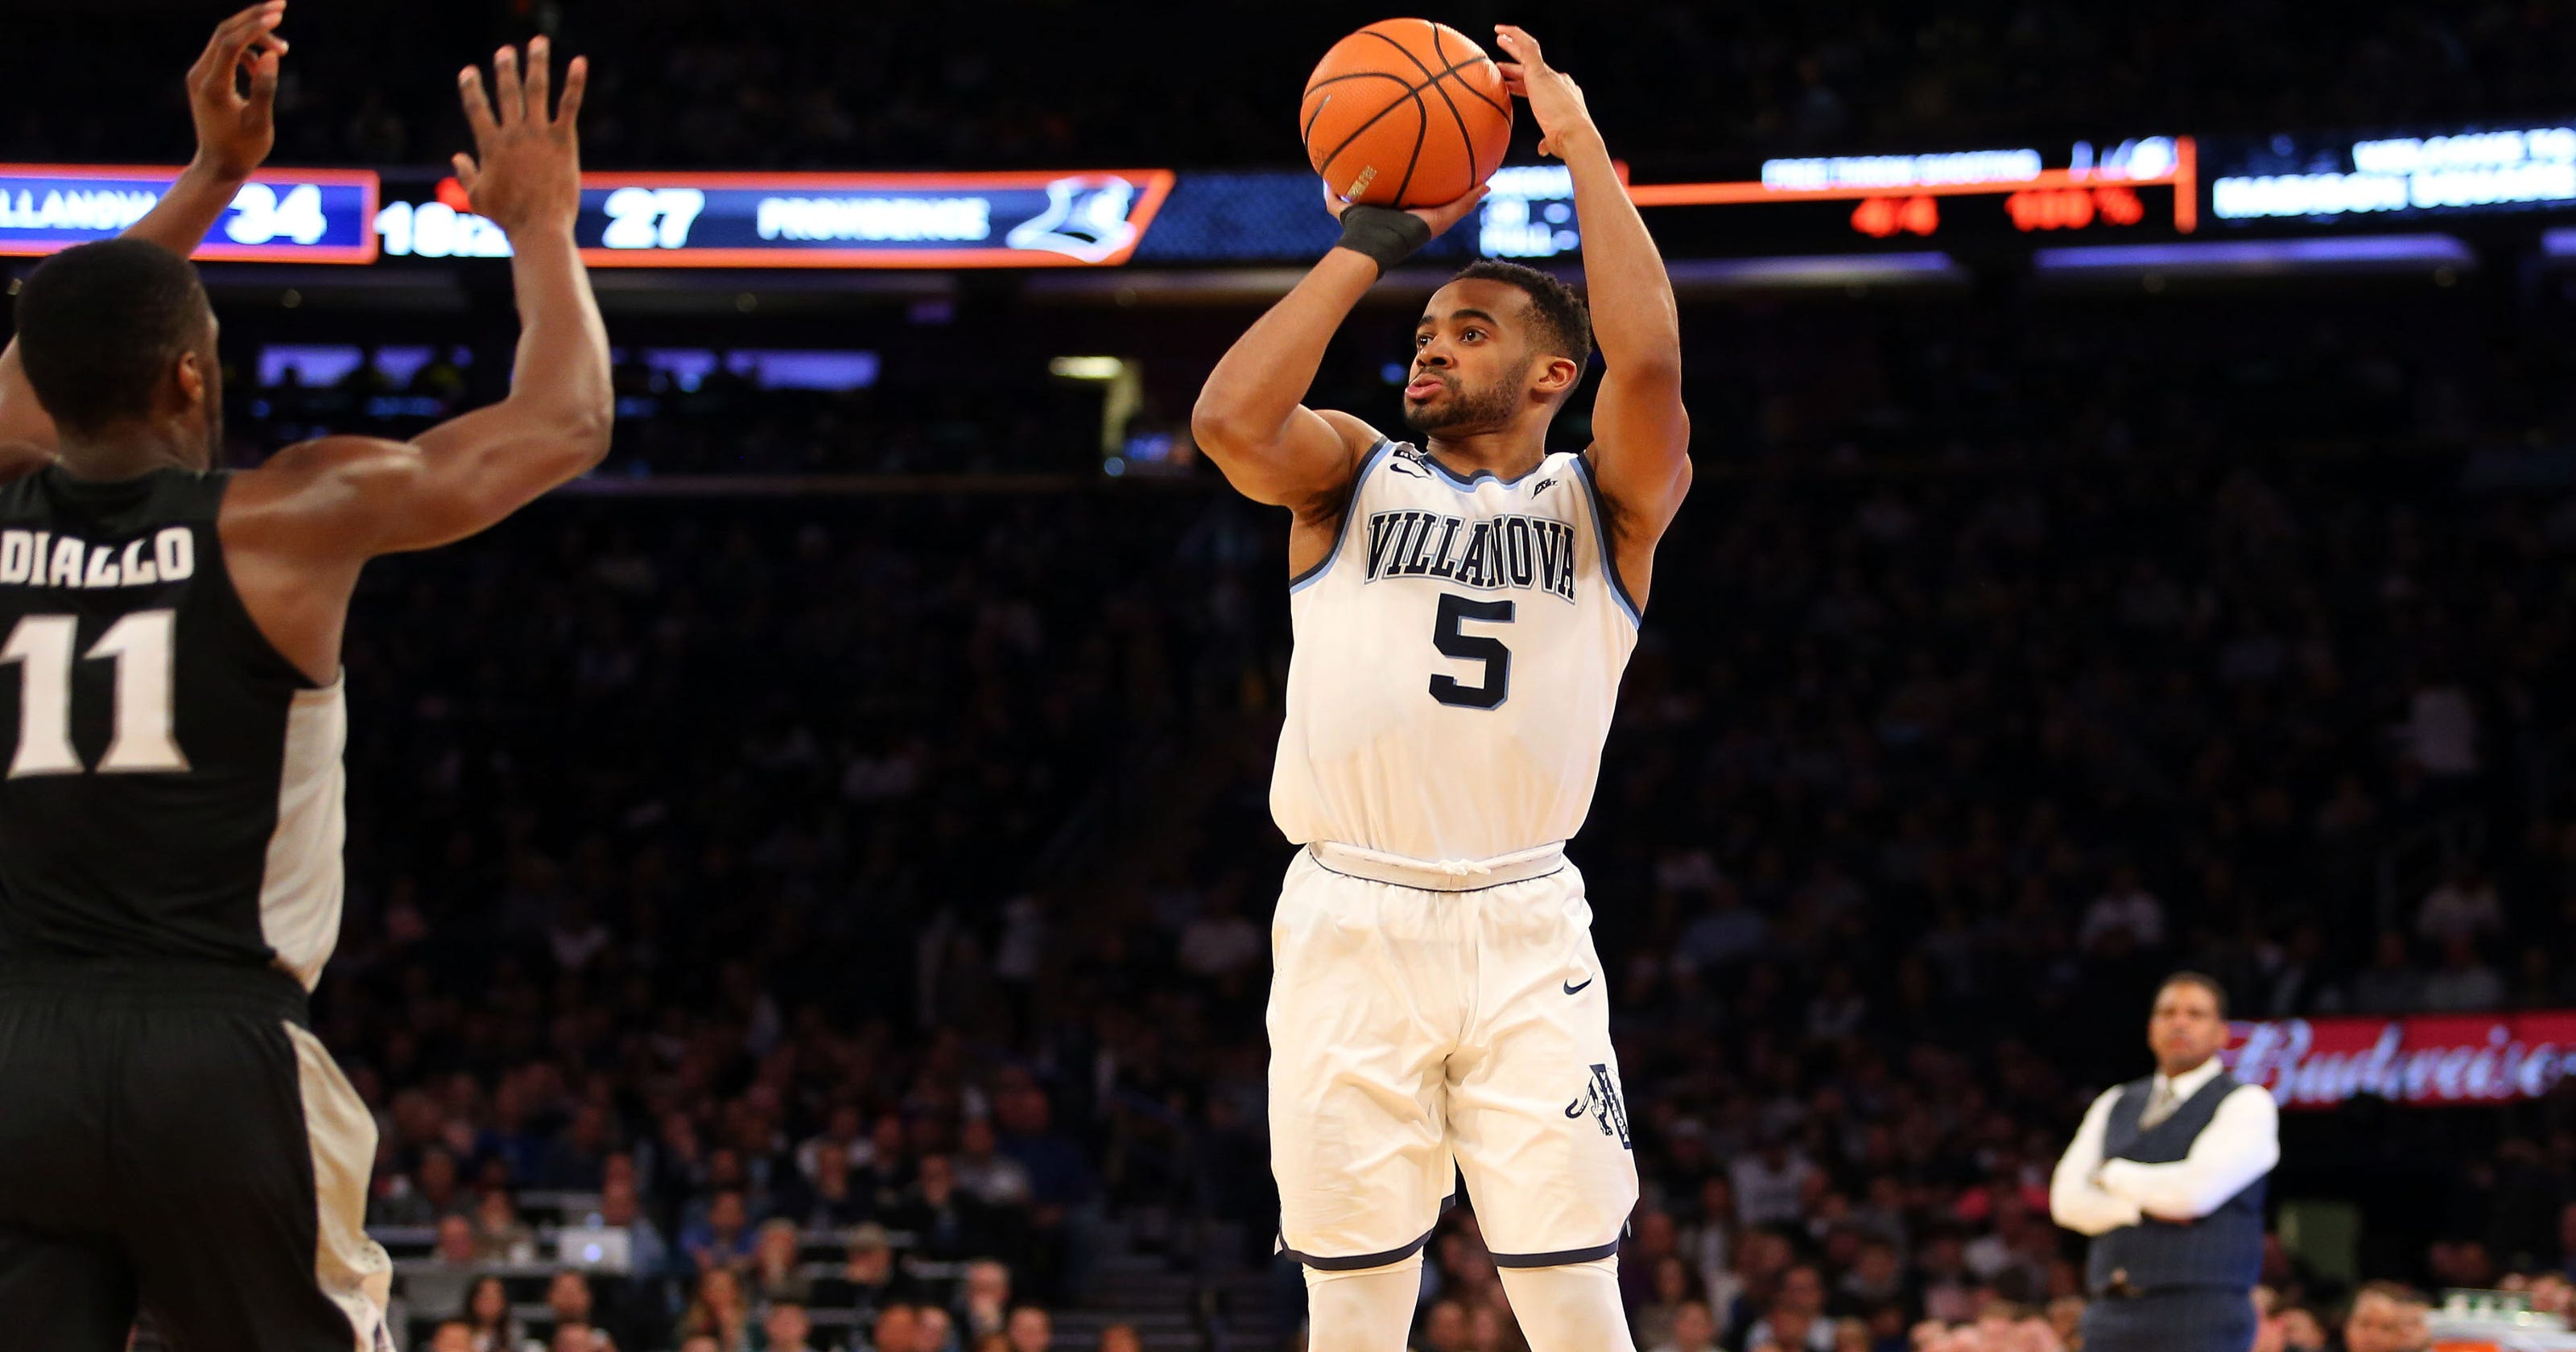 2635849f4fb Villanova faces college basketball rebuild after last year's NCAA title